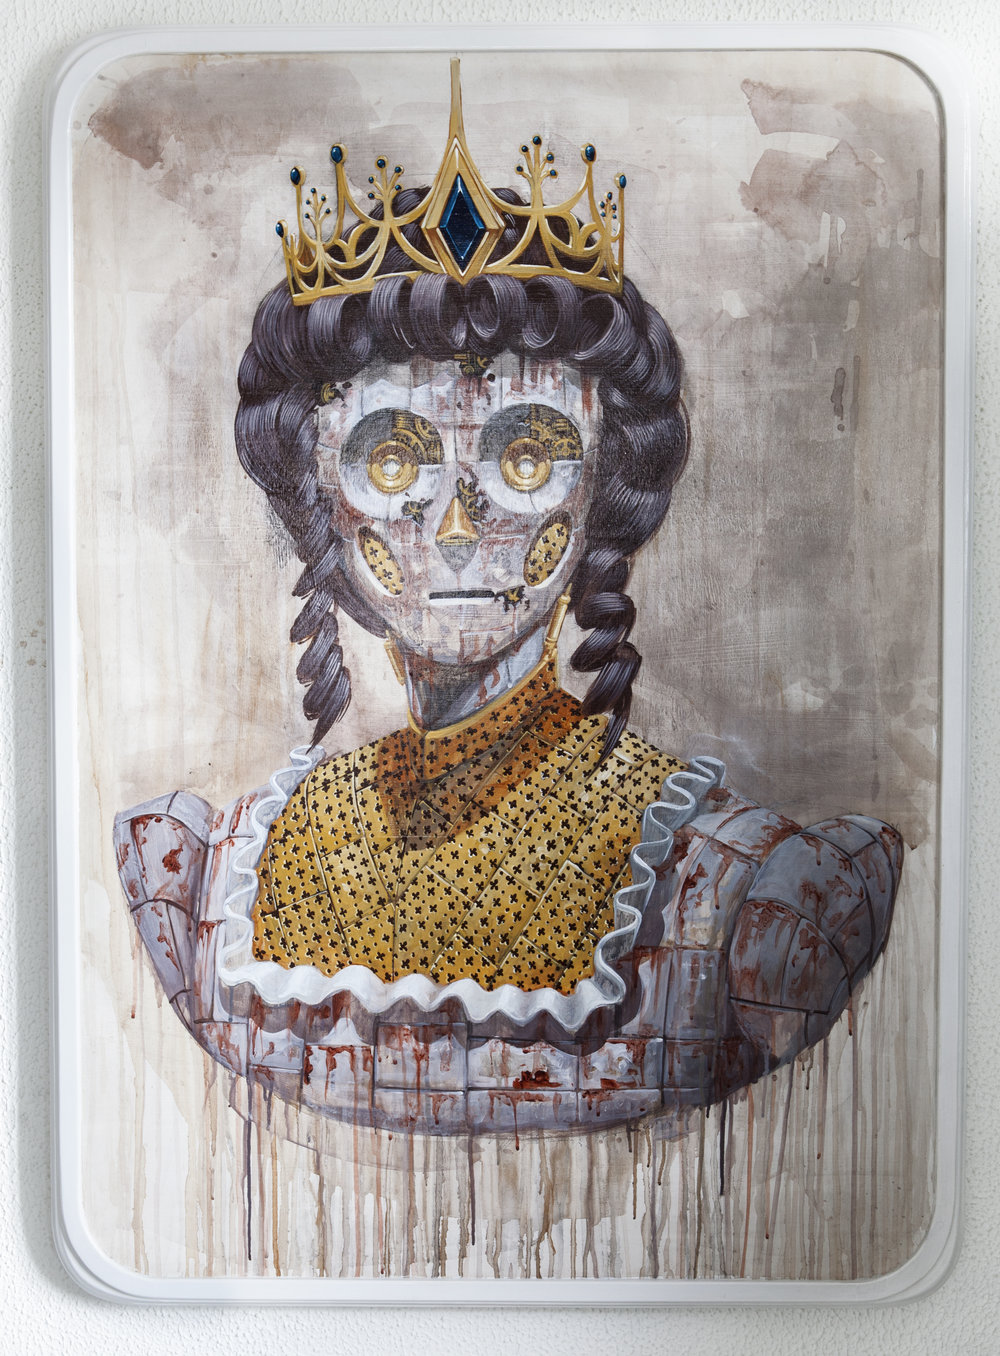 PIXELPANCHO  Robot save The Queen , 2015  Acrylic and pencil on wood panel with hand made frame. Signed, titled and dated on reverse  50 x 35 in.